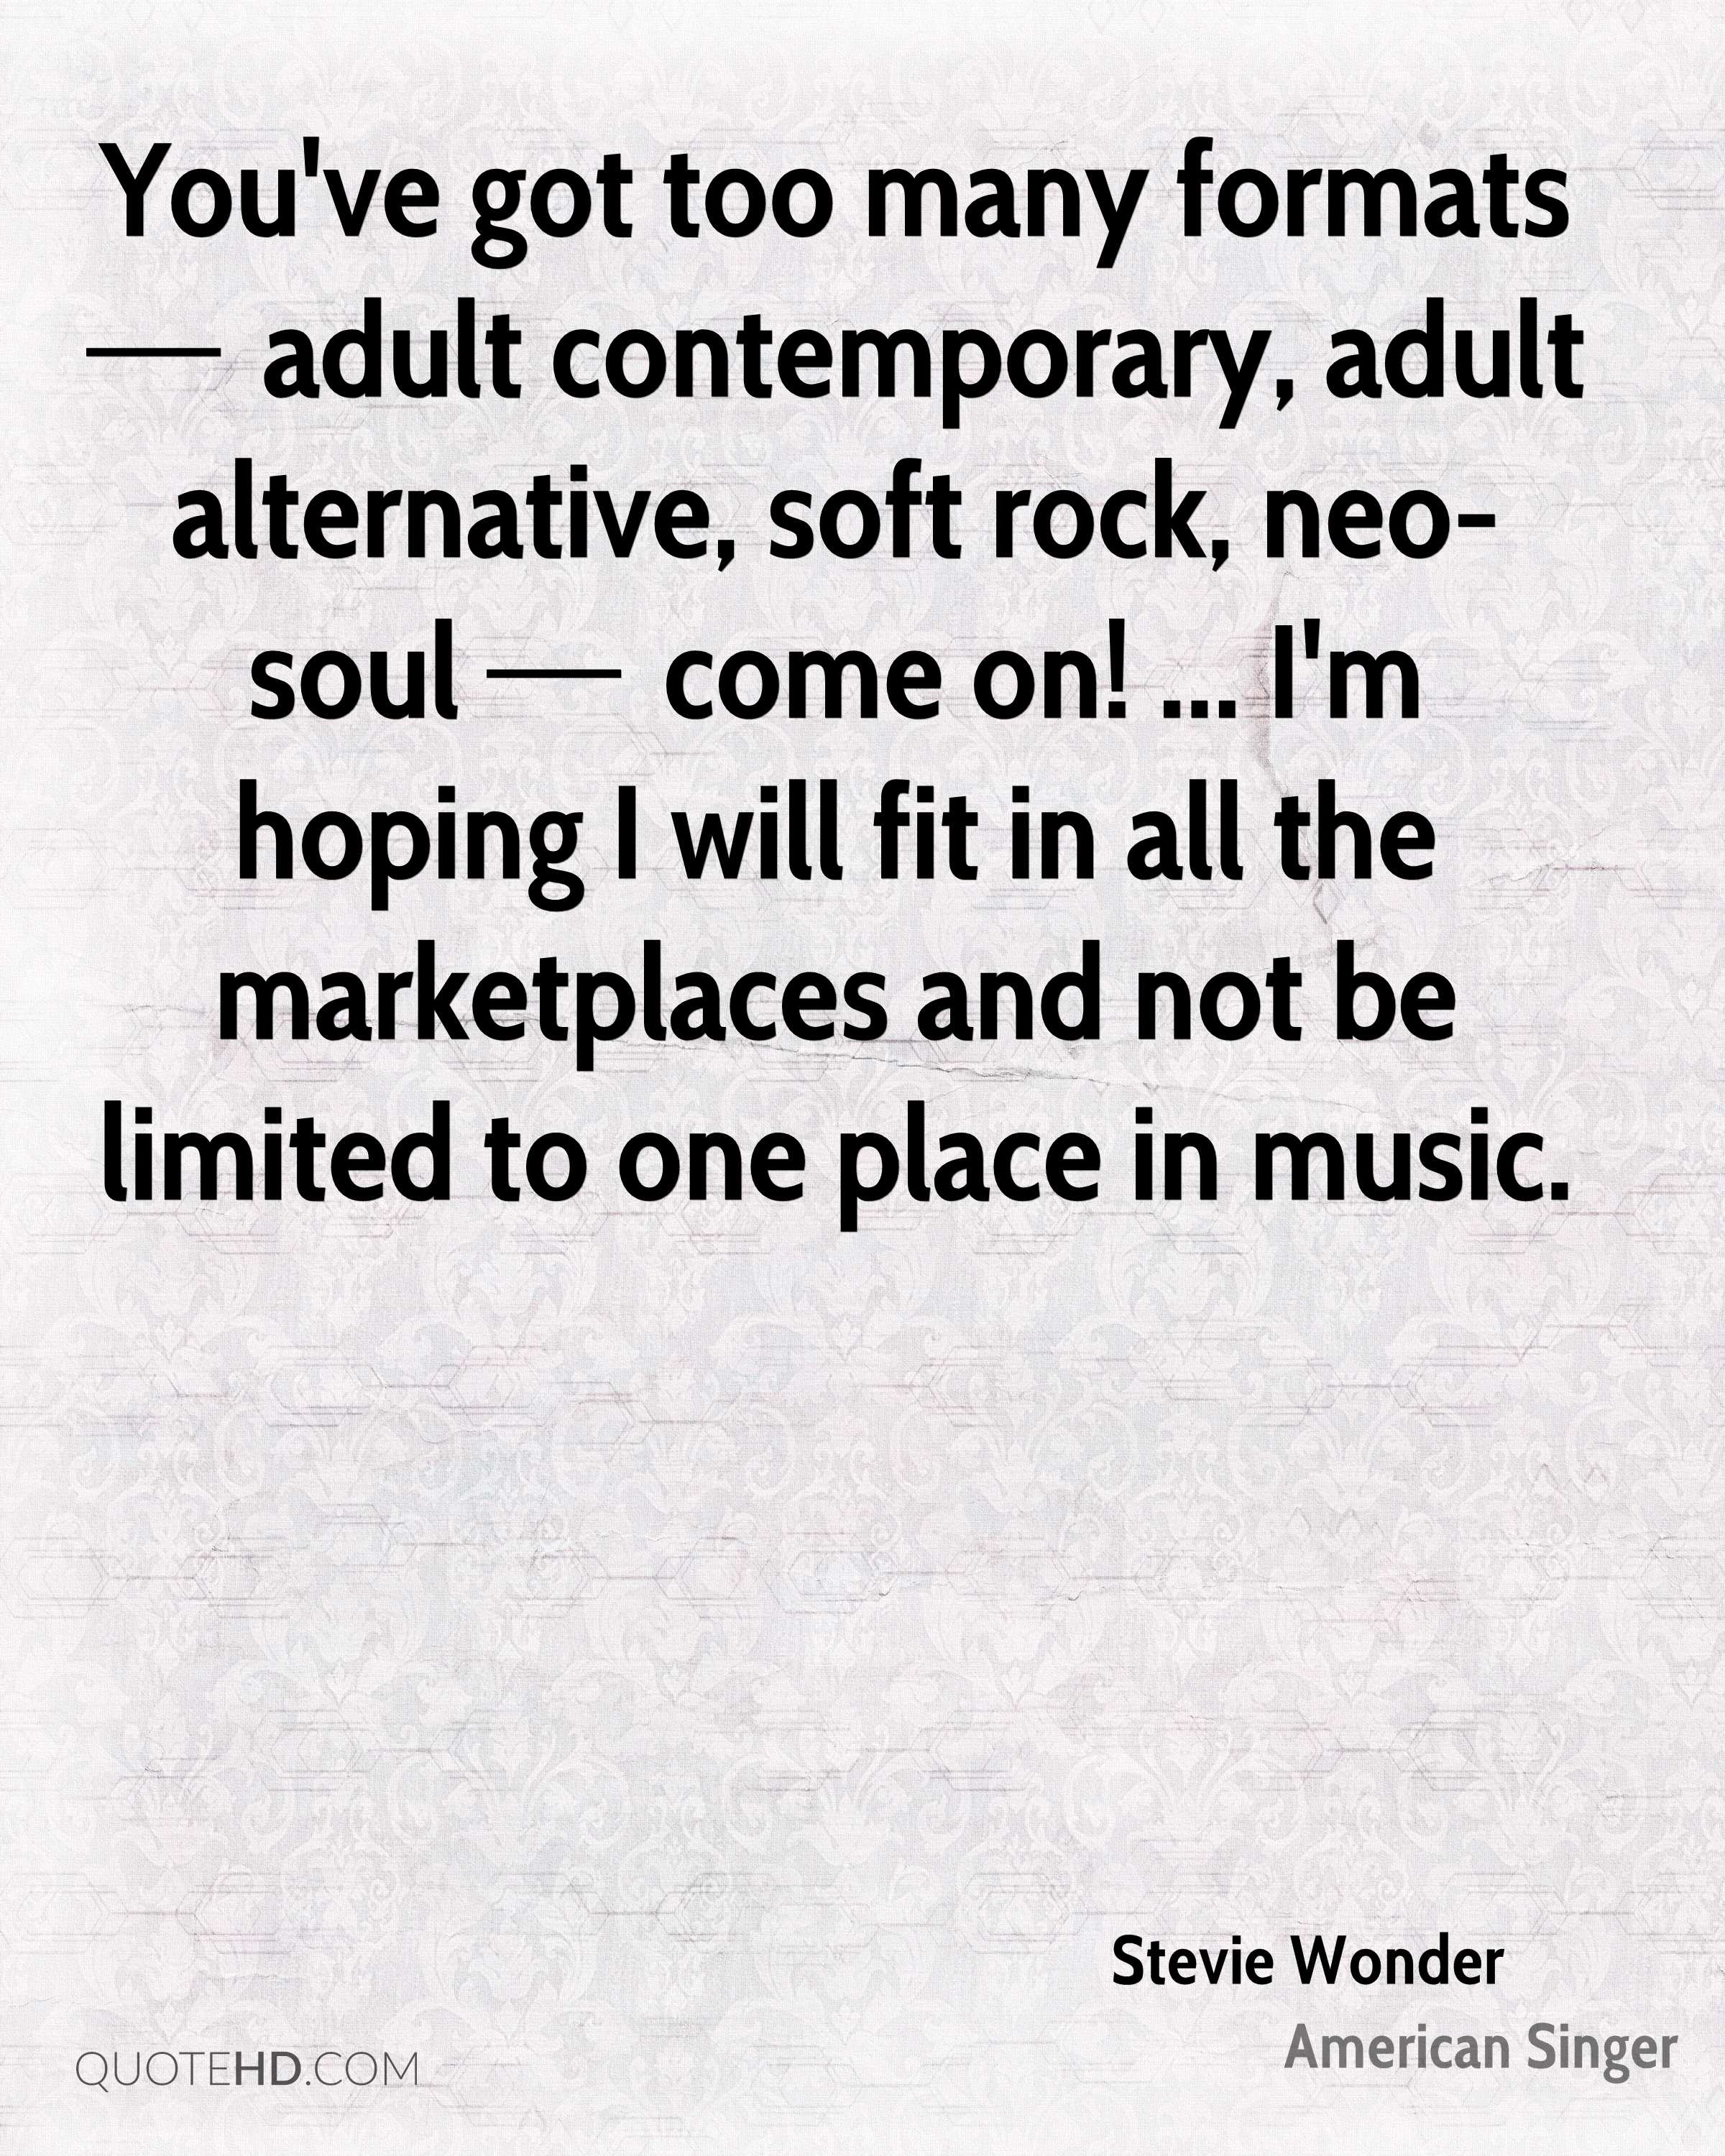 You've got too many formats — adult contemporary, adult alternative, soft rock, neo-soul — come on! ... I'm hoping I will fit in all the marketplaces and not be limited to one place in music.